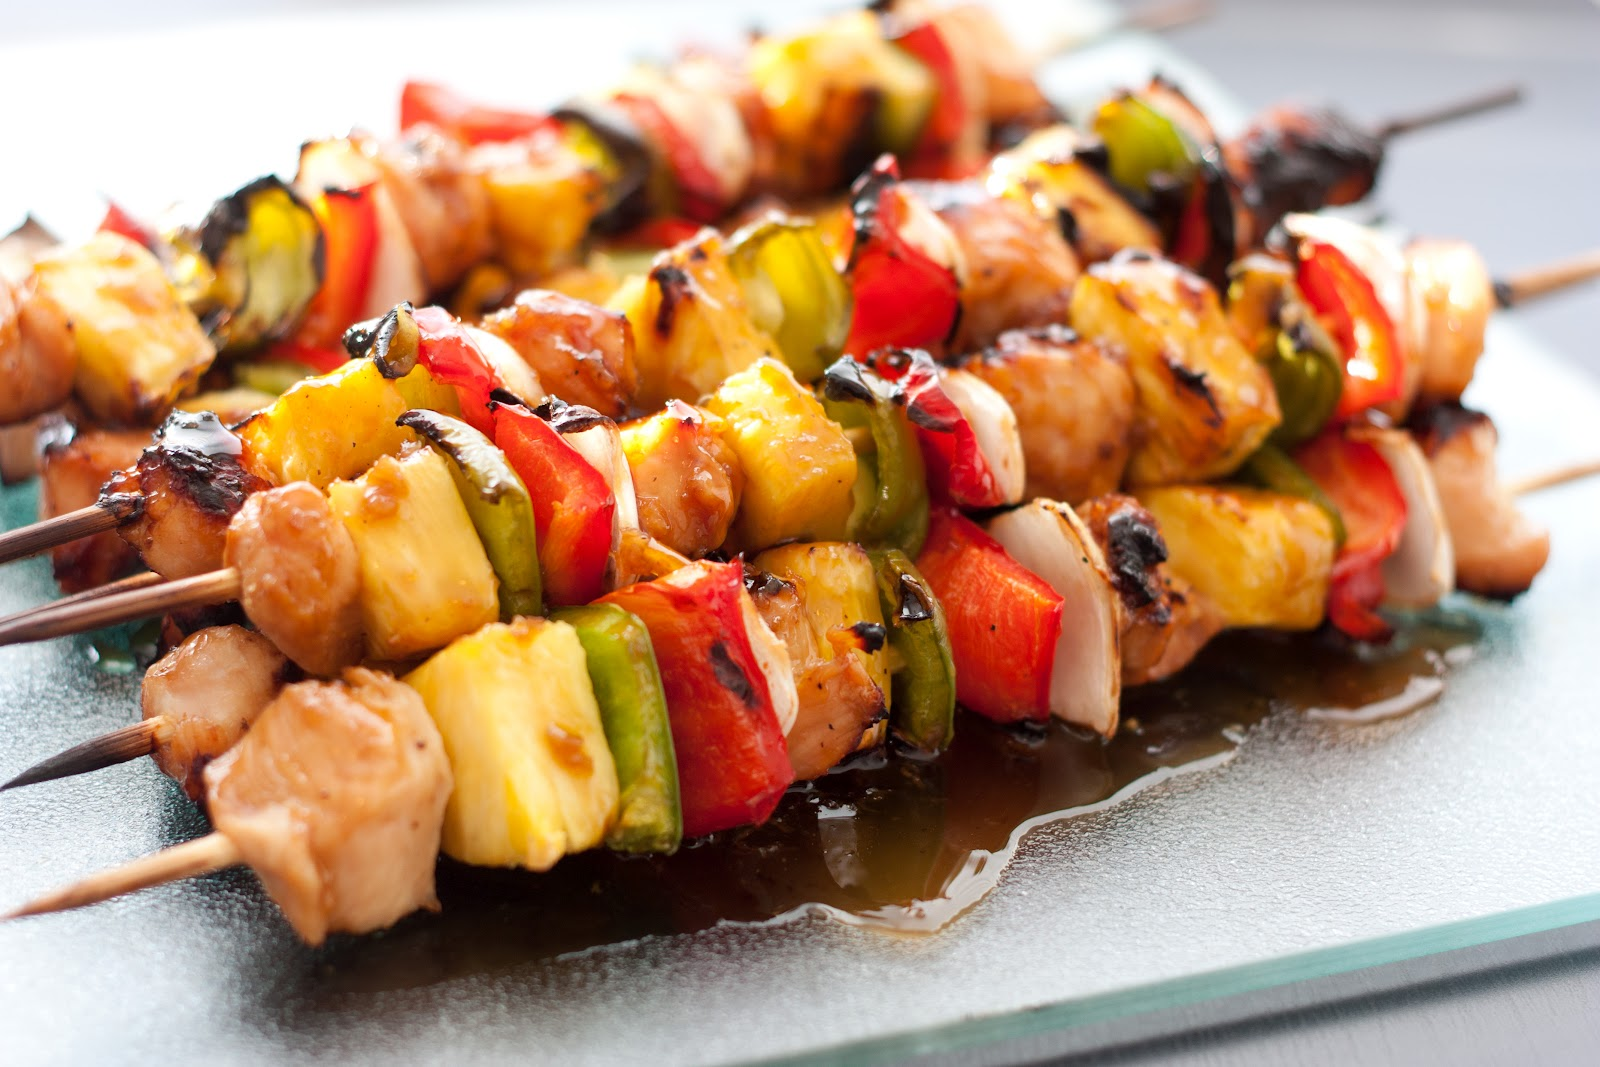 Marinated Jerk Chicken Skewers